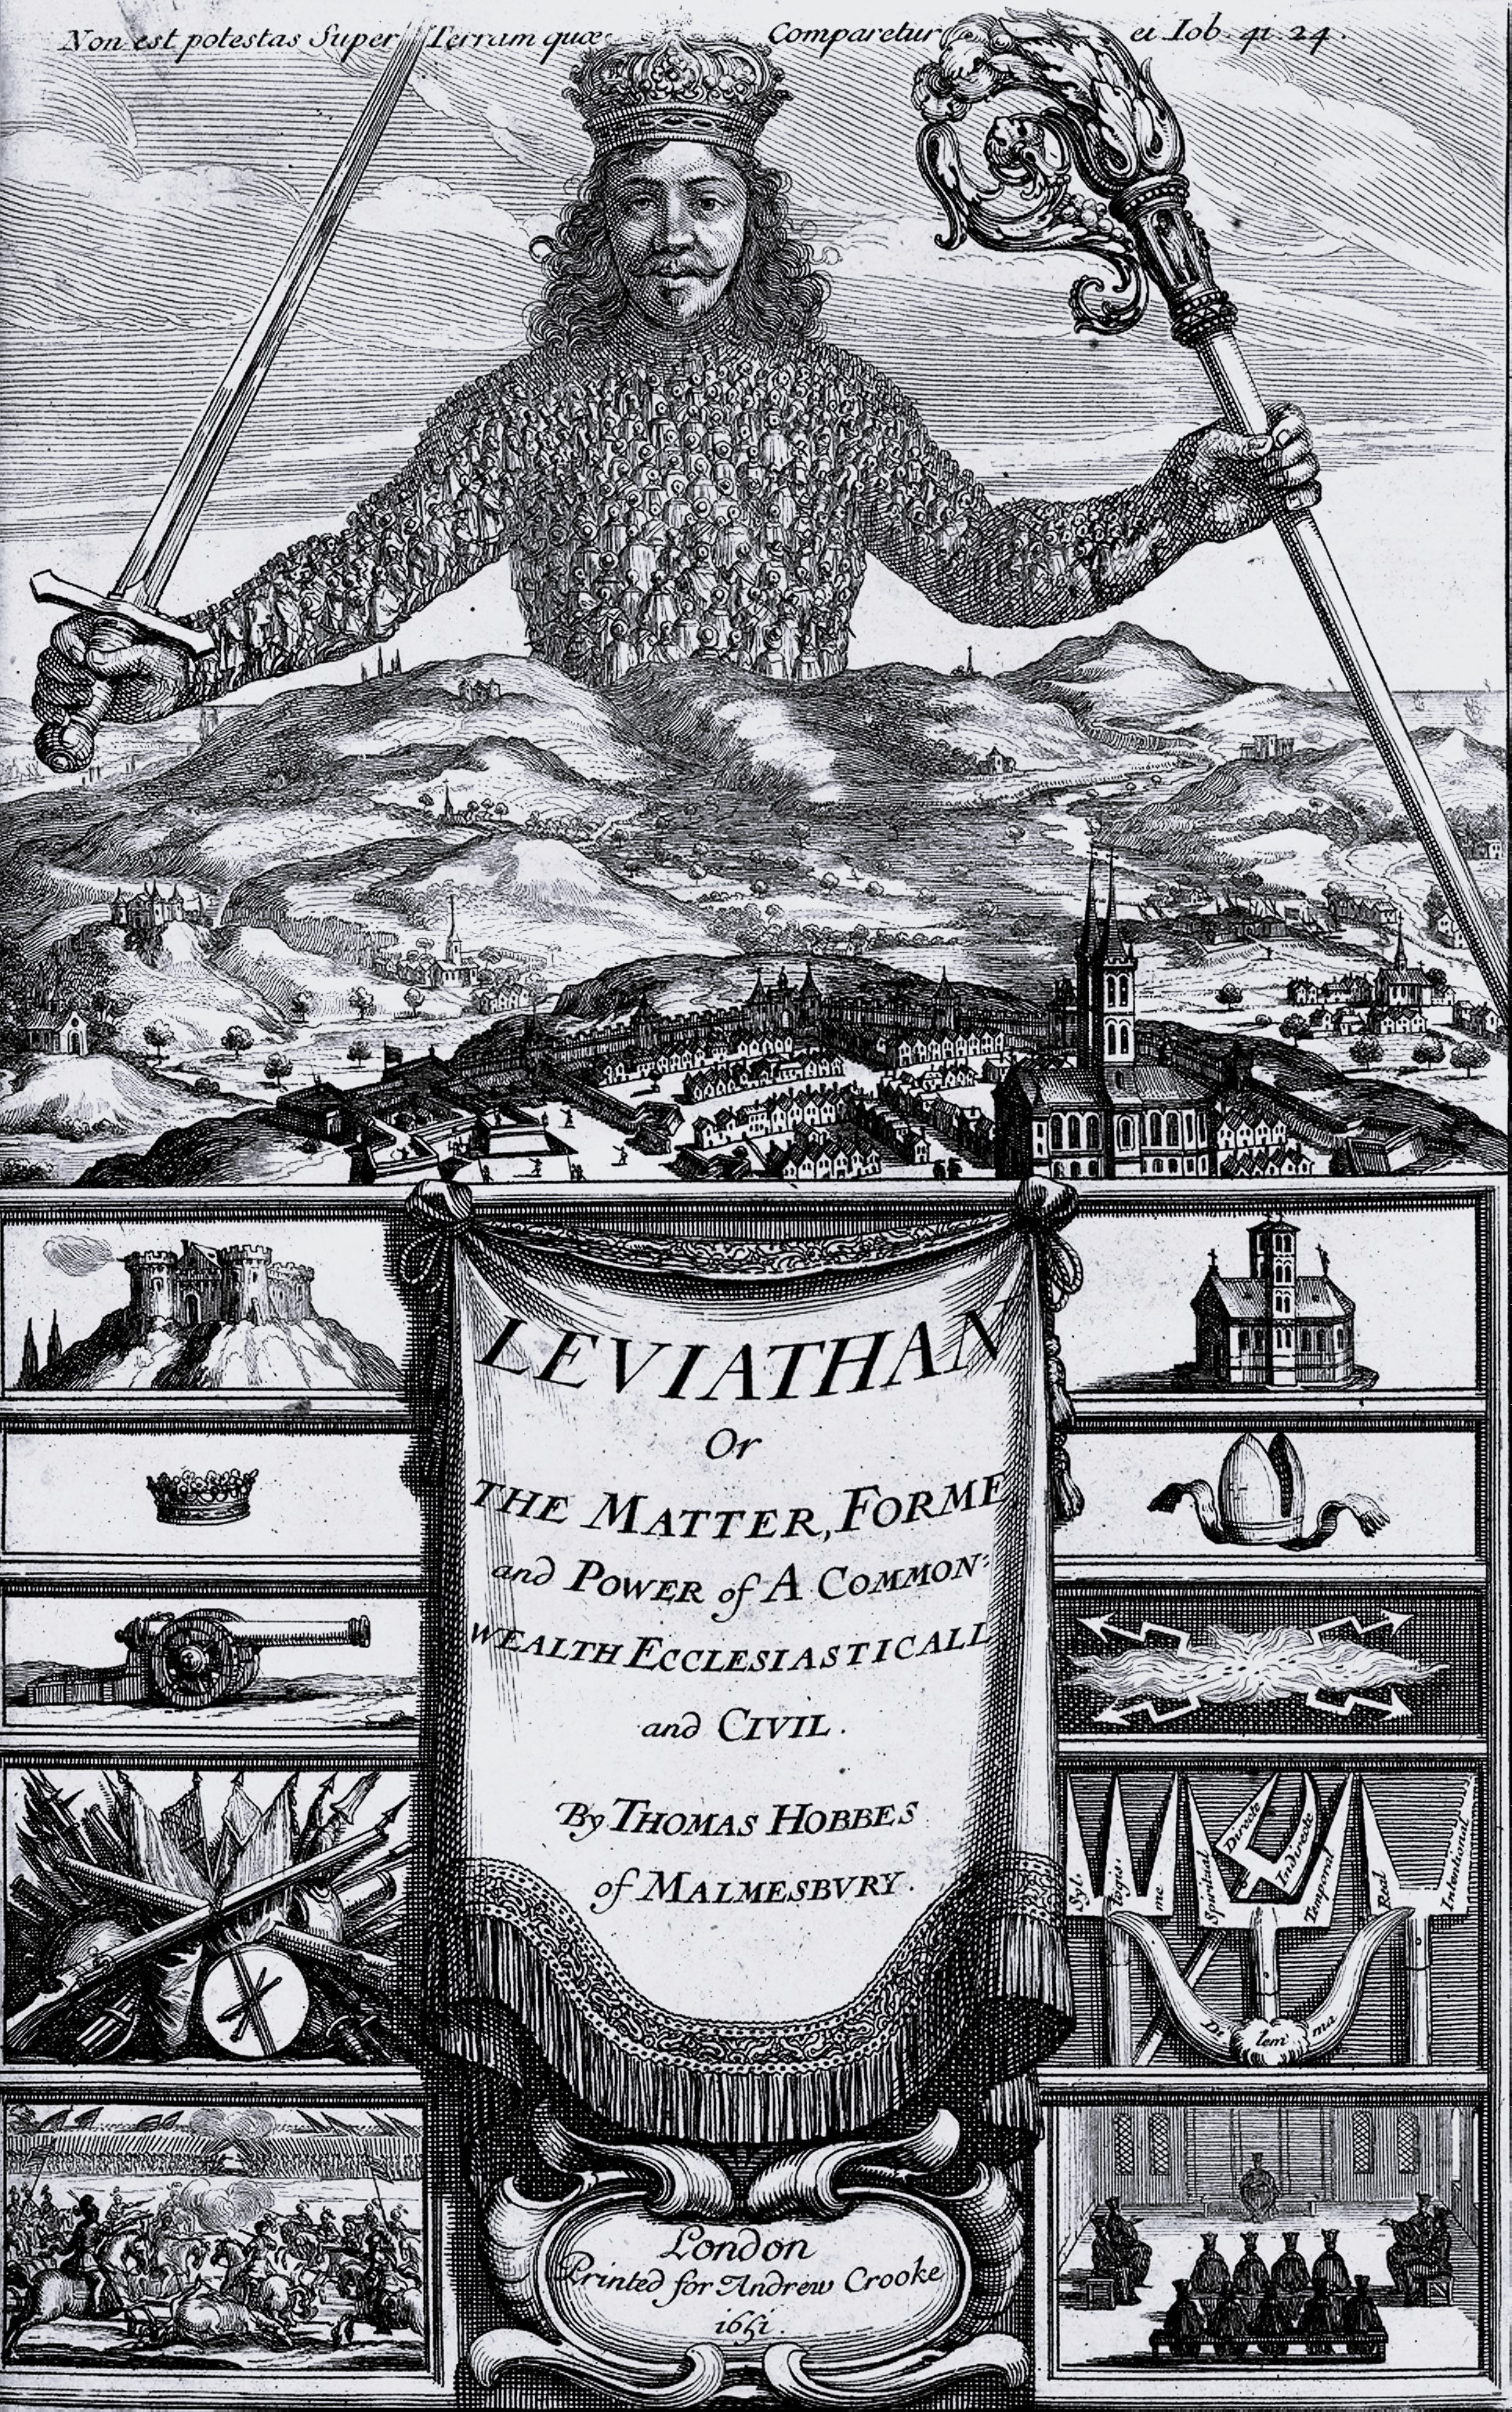 https://upload.wikimedia.org/wikipedia/commons/a/a1/Leviathan_by_Thomas_Hobbes.jpg